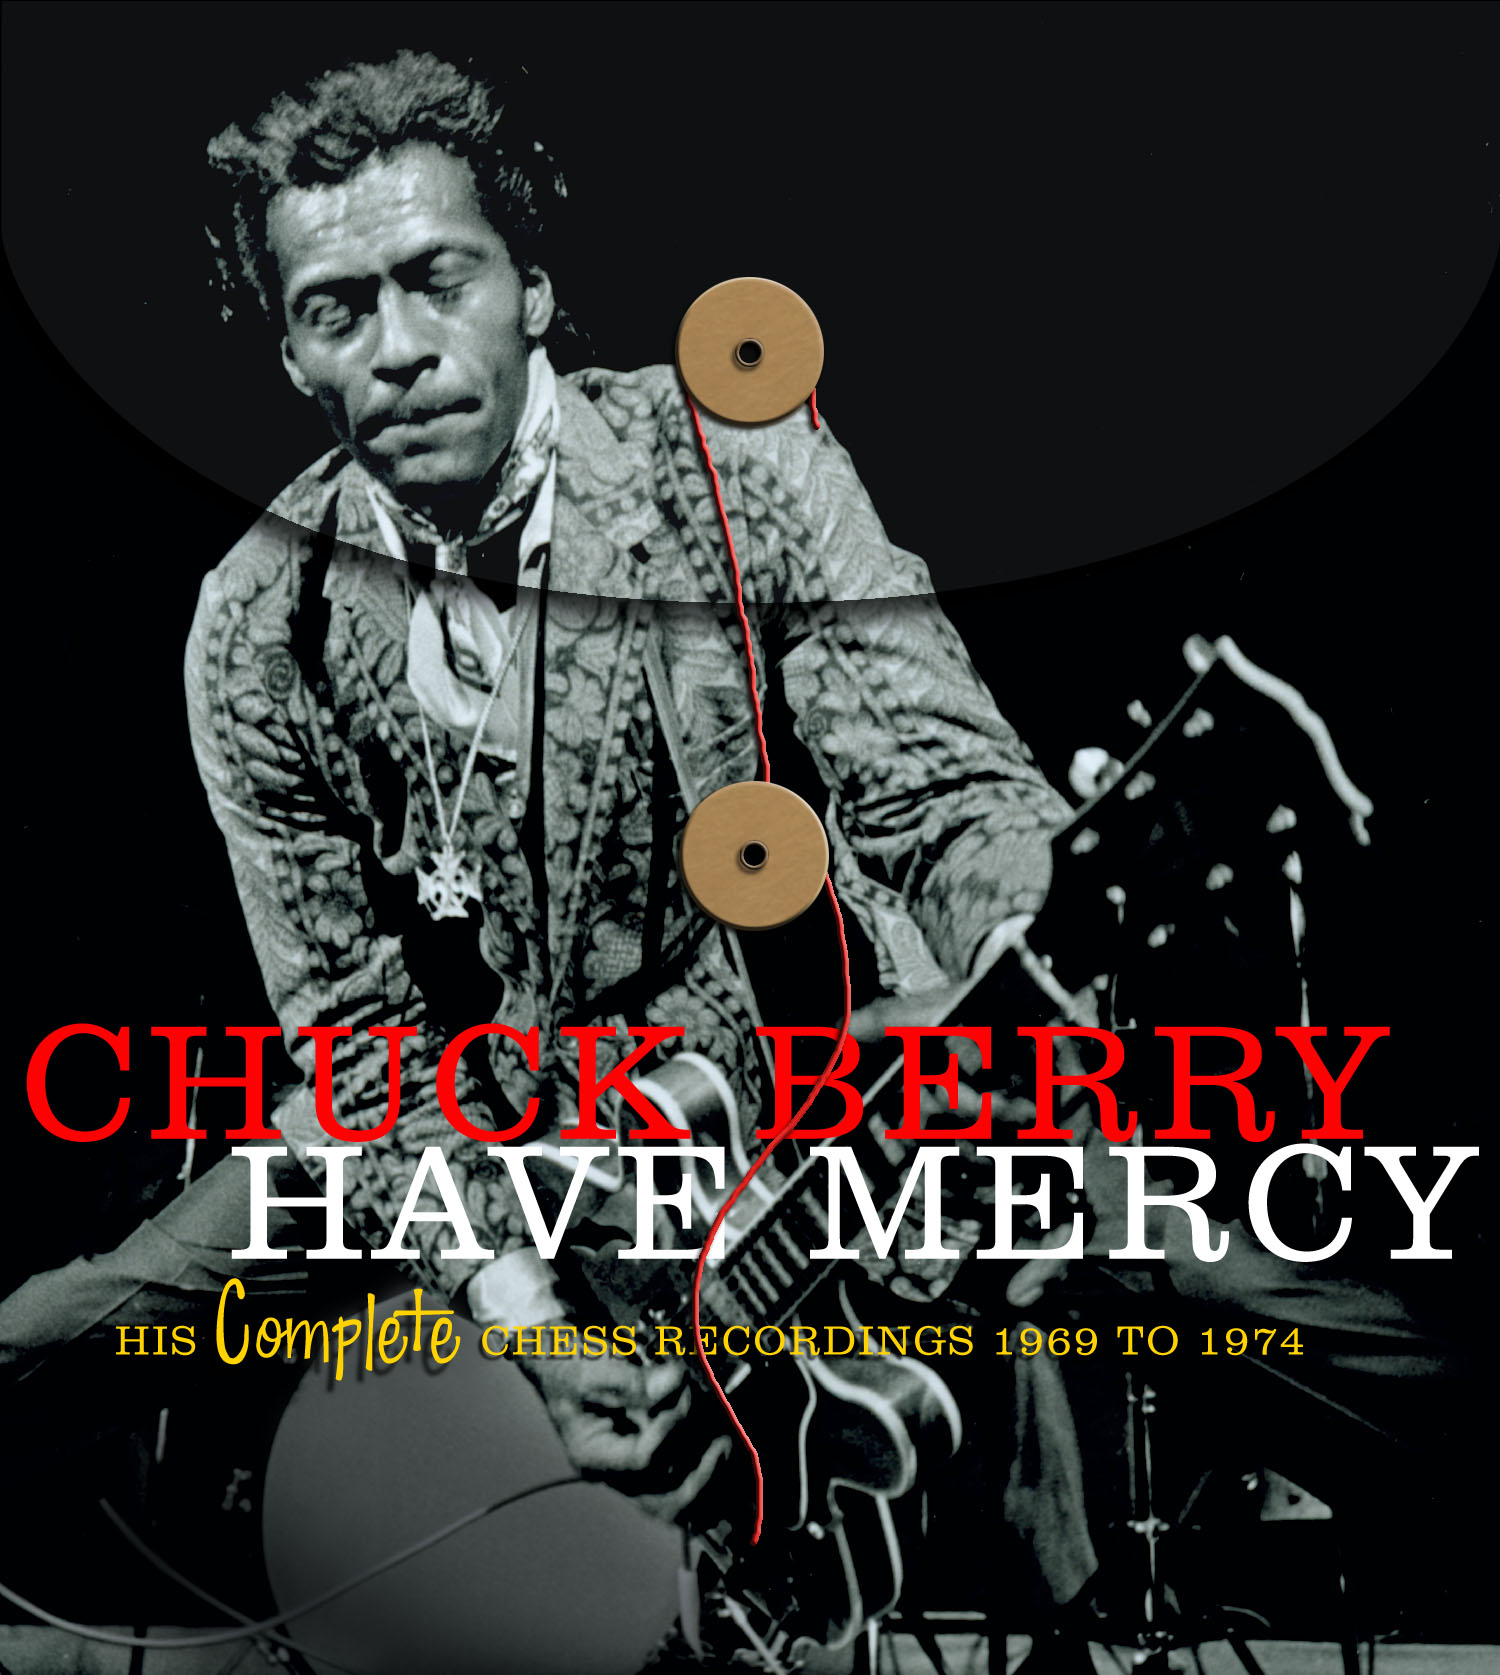 Chuck Berry download wallpapers